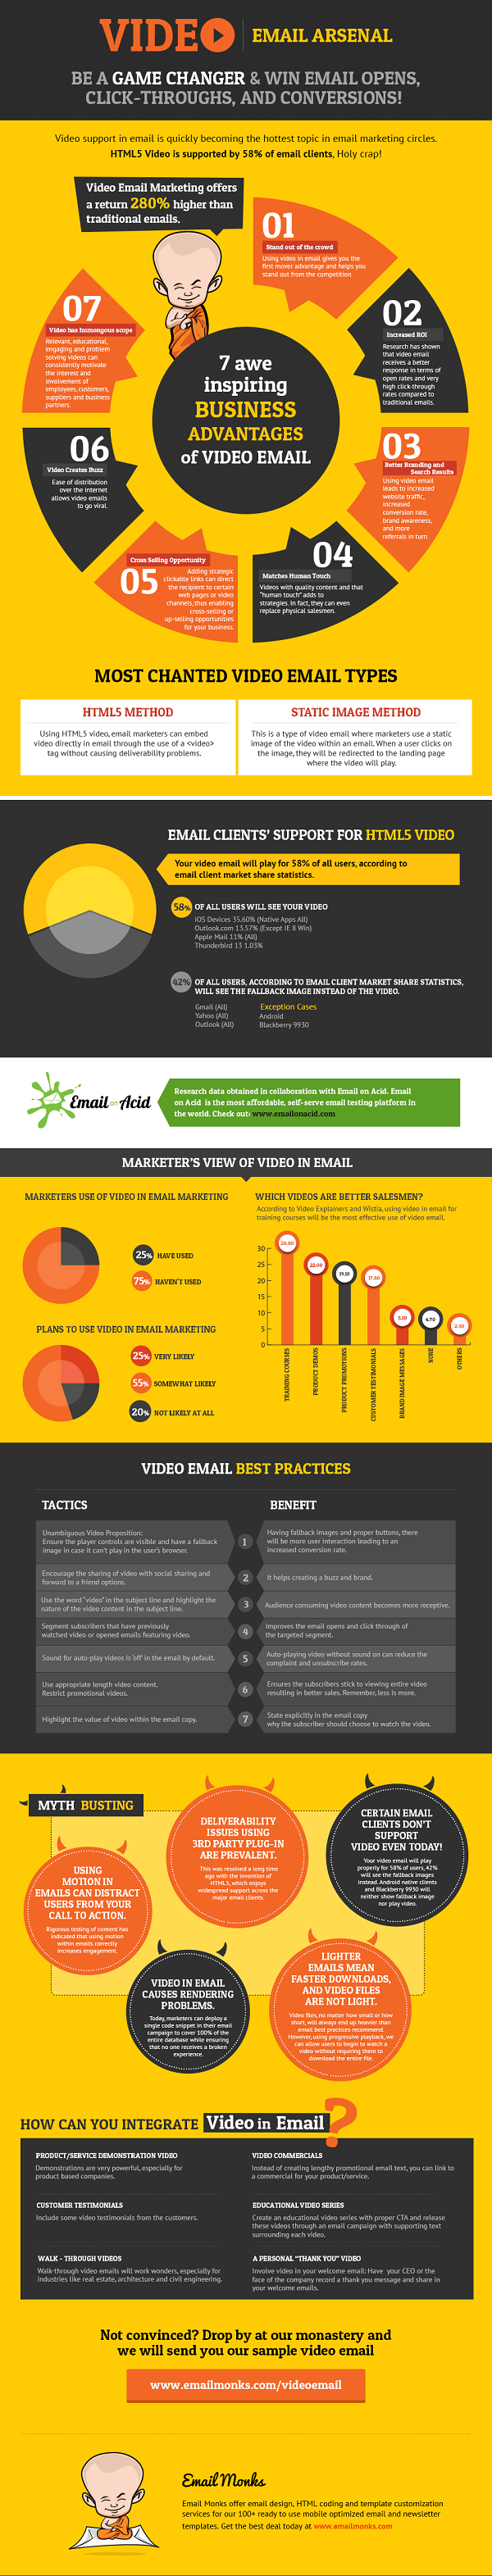 10 killer email marketing infographics 6 email monks 7 awe inspiring business advantages of video email pronofoot35fo Gallery